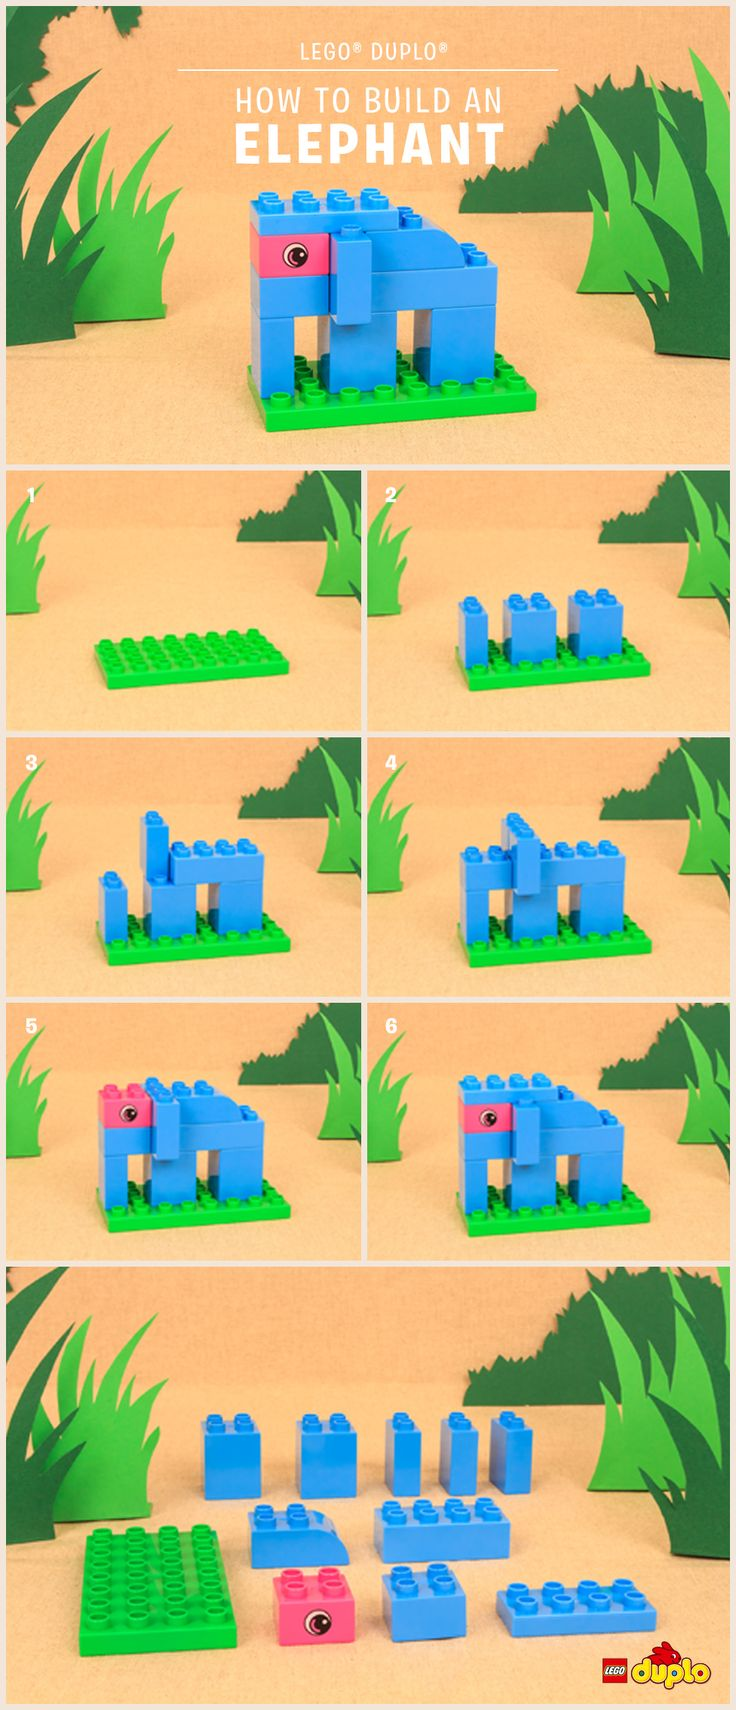 Here's how you and your toddler can build a cute elephant, with just a few LEGO DUPLO bricks! http://www.lego.com/da-dk/family/articles/how-to-build-an-elephant-054dd4ab224e40cfa23a15a7fdf0d919